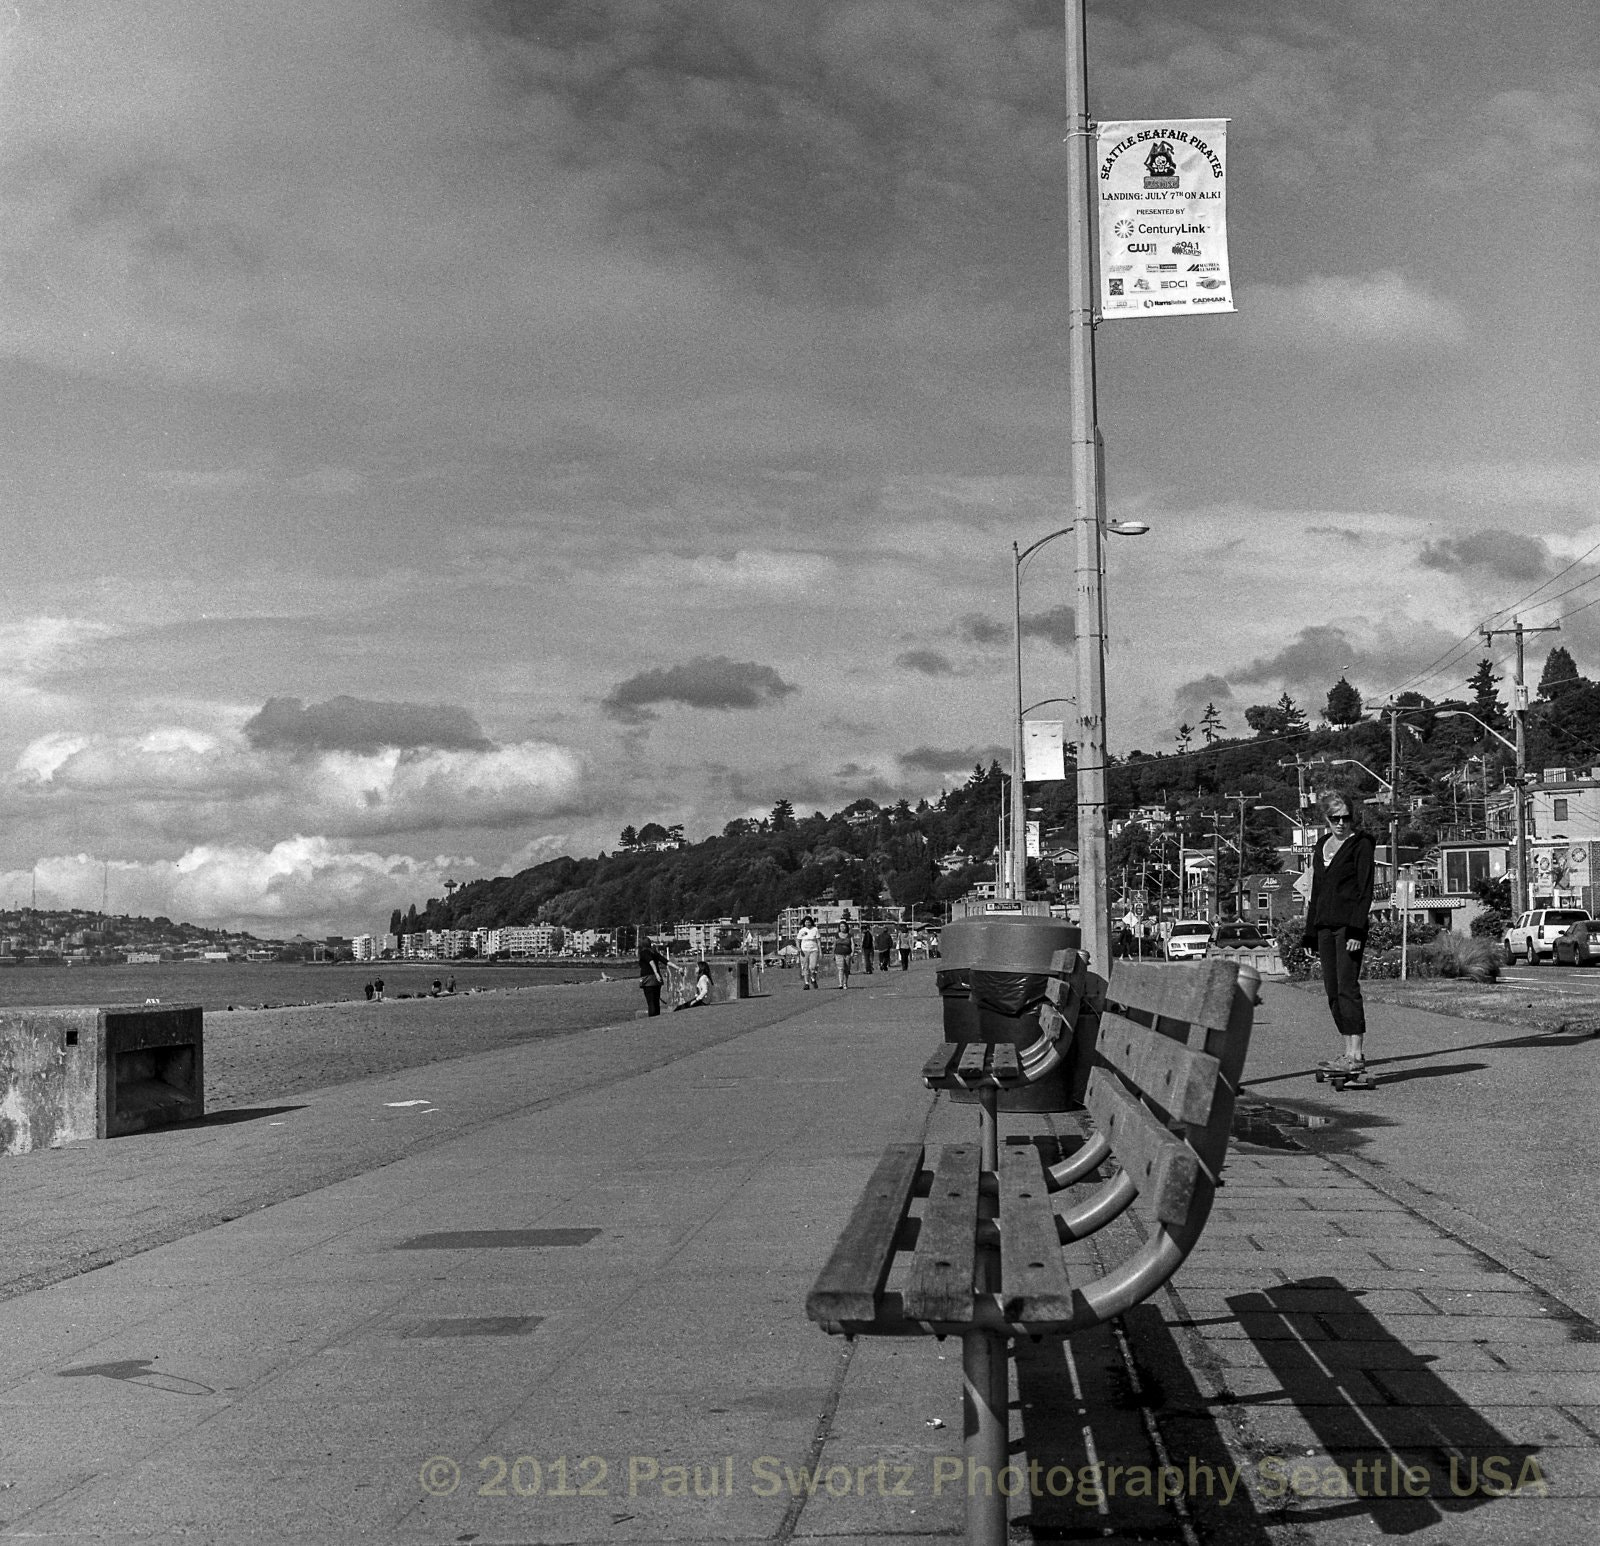 Photograph Alki Beach, June 2012 by Paul Swortz on 500px